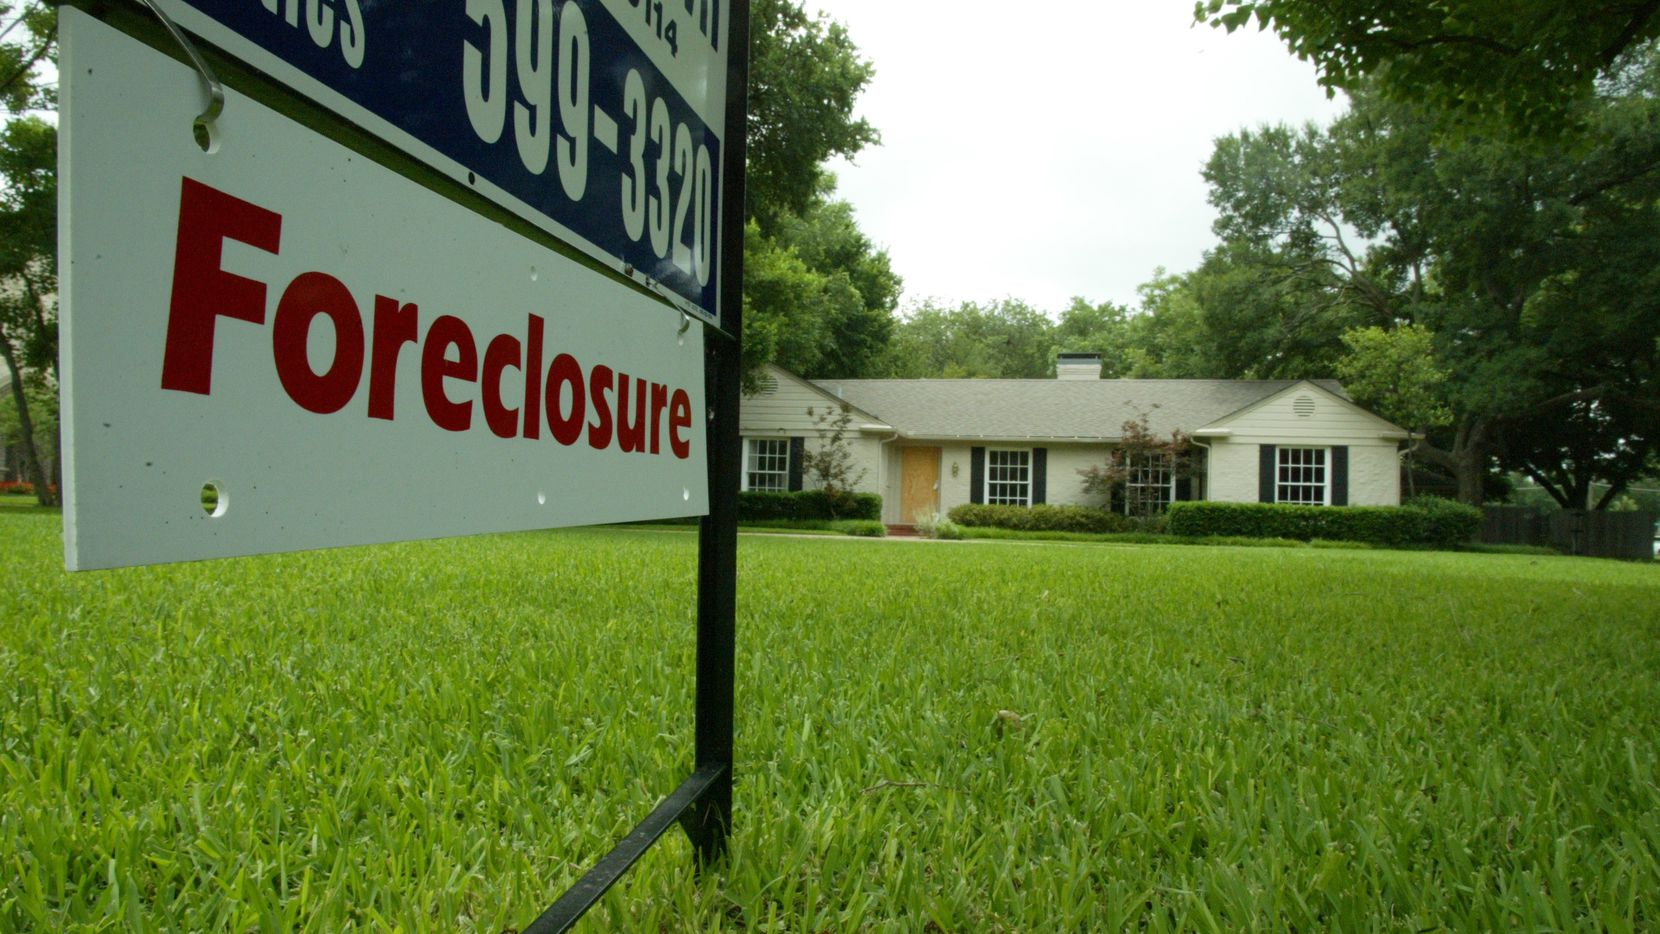 Home foreclosure rates have so far remained low thanks to moratoriums and payment forbearance during the COVID-19 pandemic.